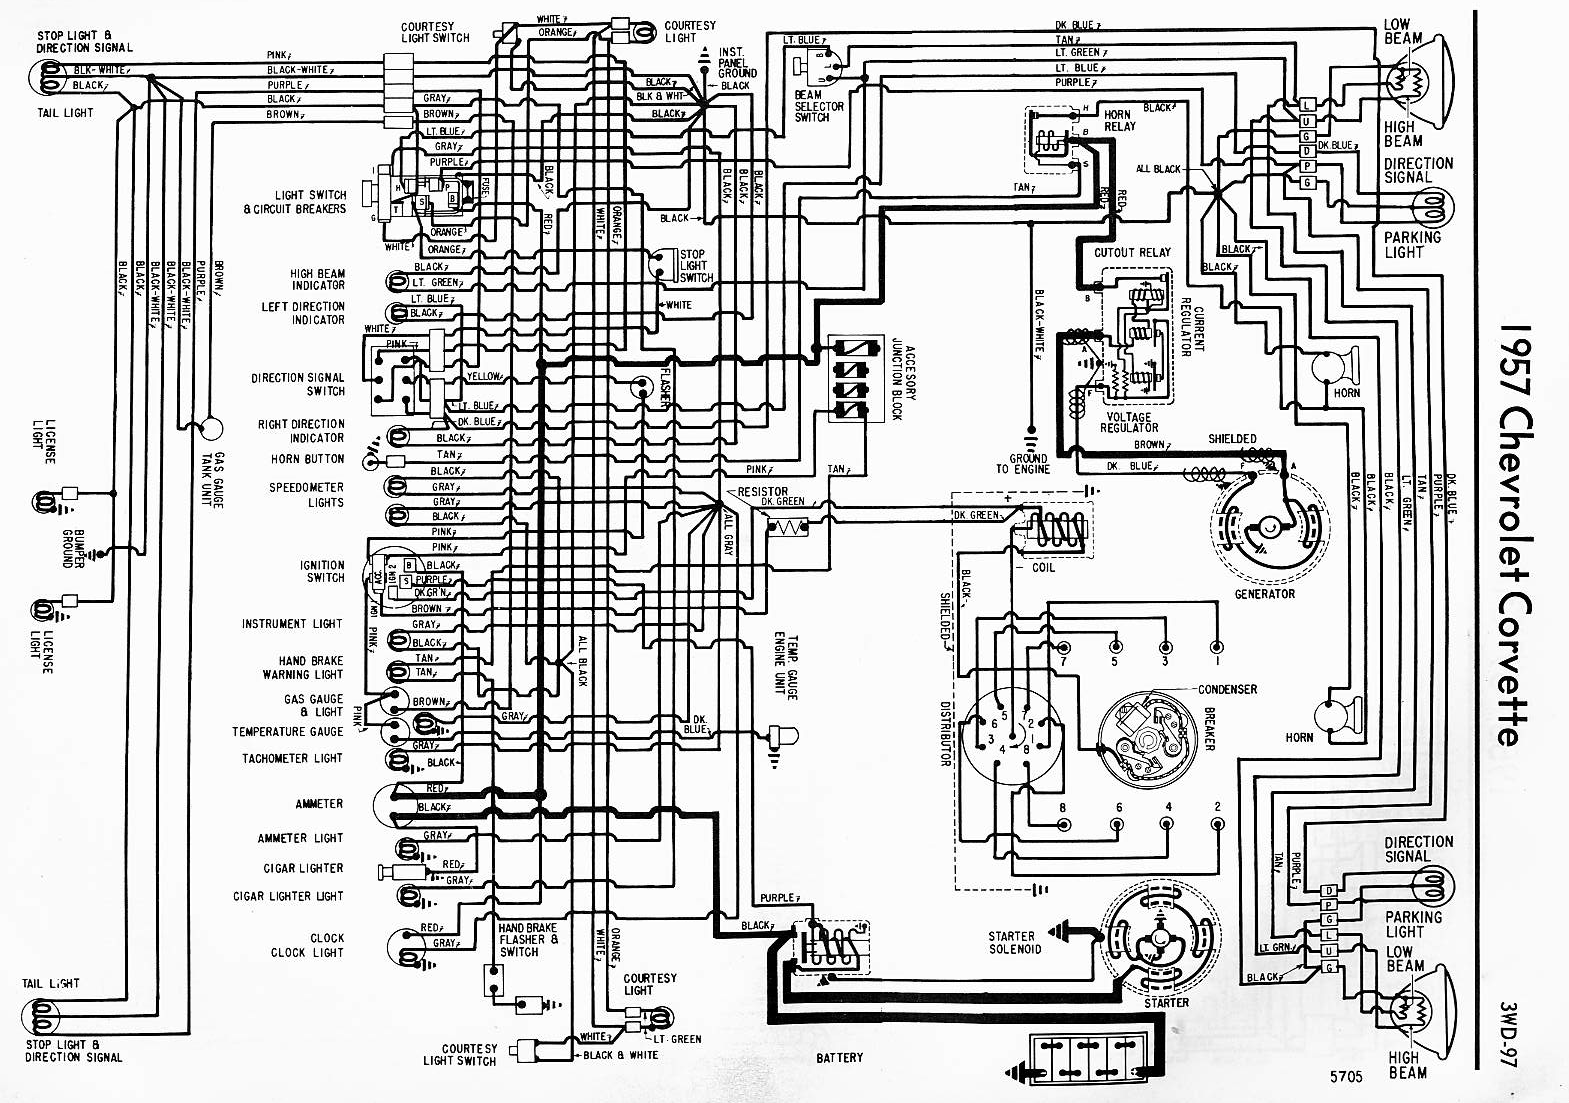 57 corvettte tracer schematic best one 1957 corvette wiring diagram willcox corvette, inc 1980 corvette wiring diagram at readyjetset.co